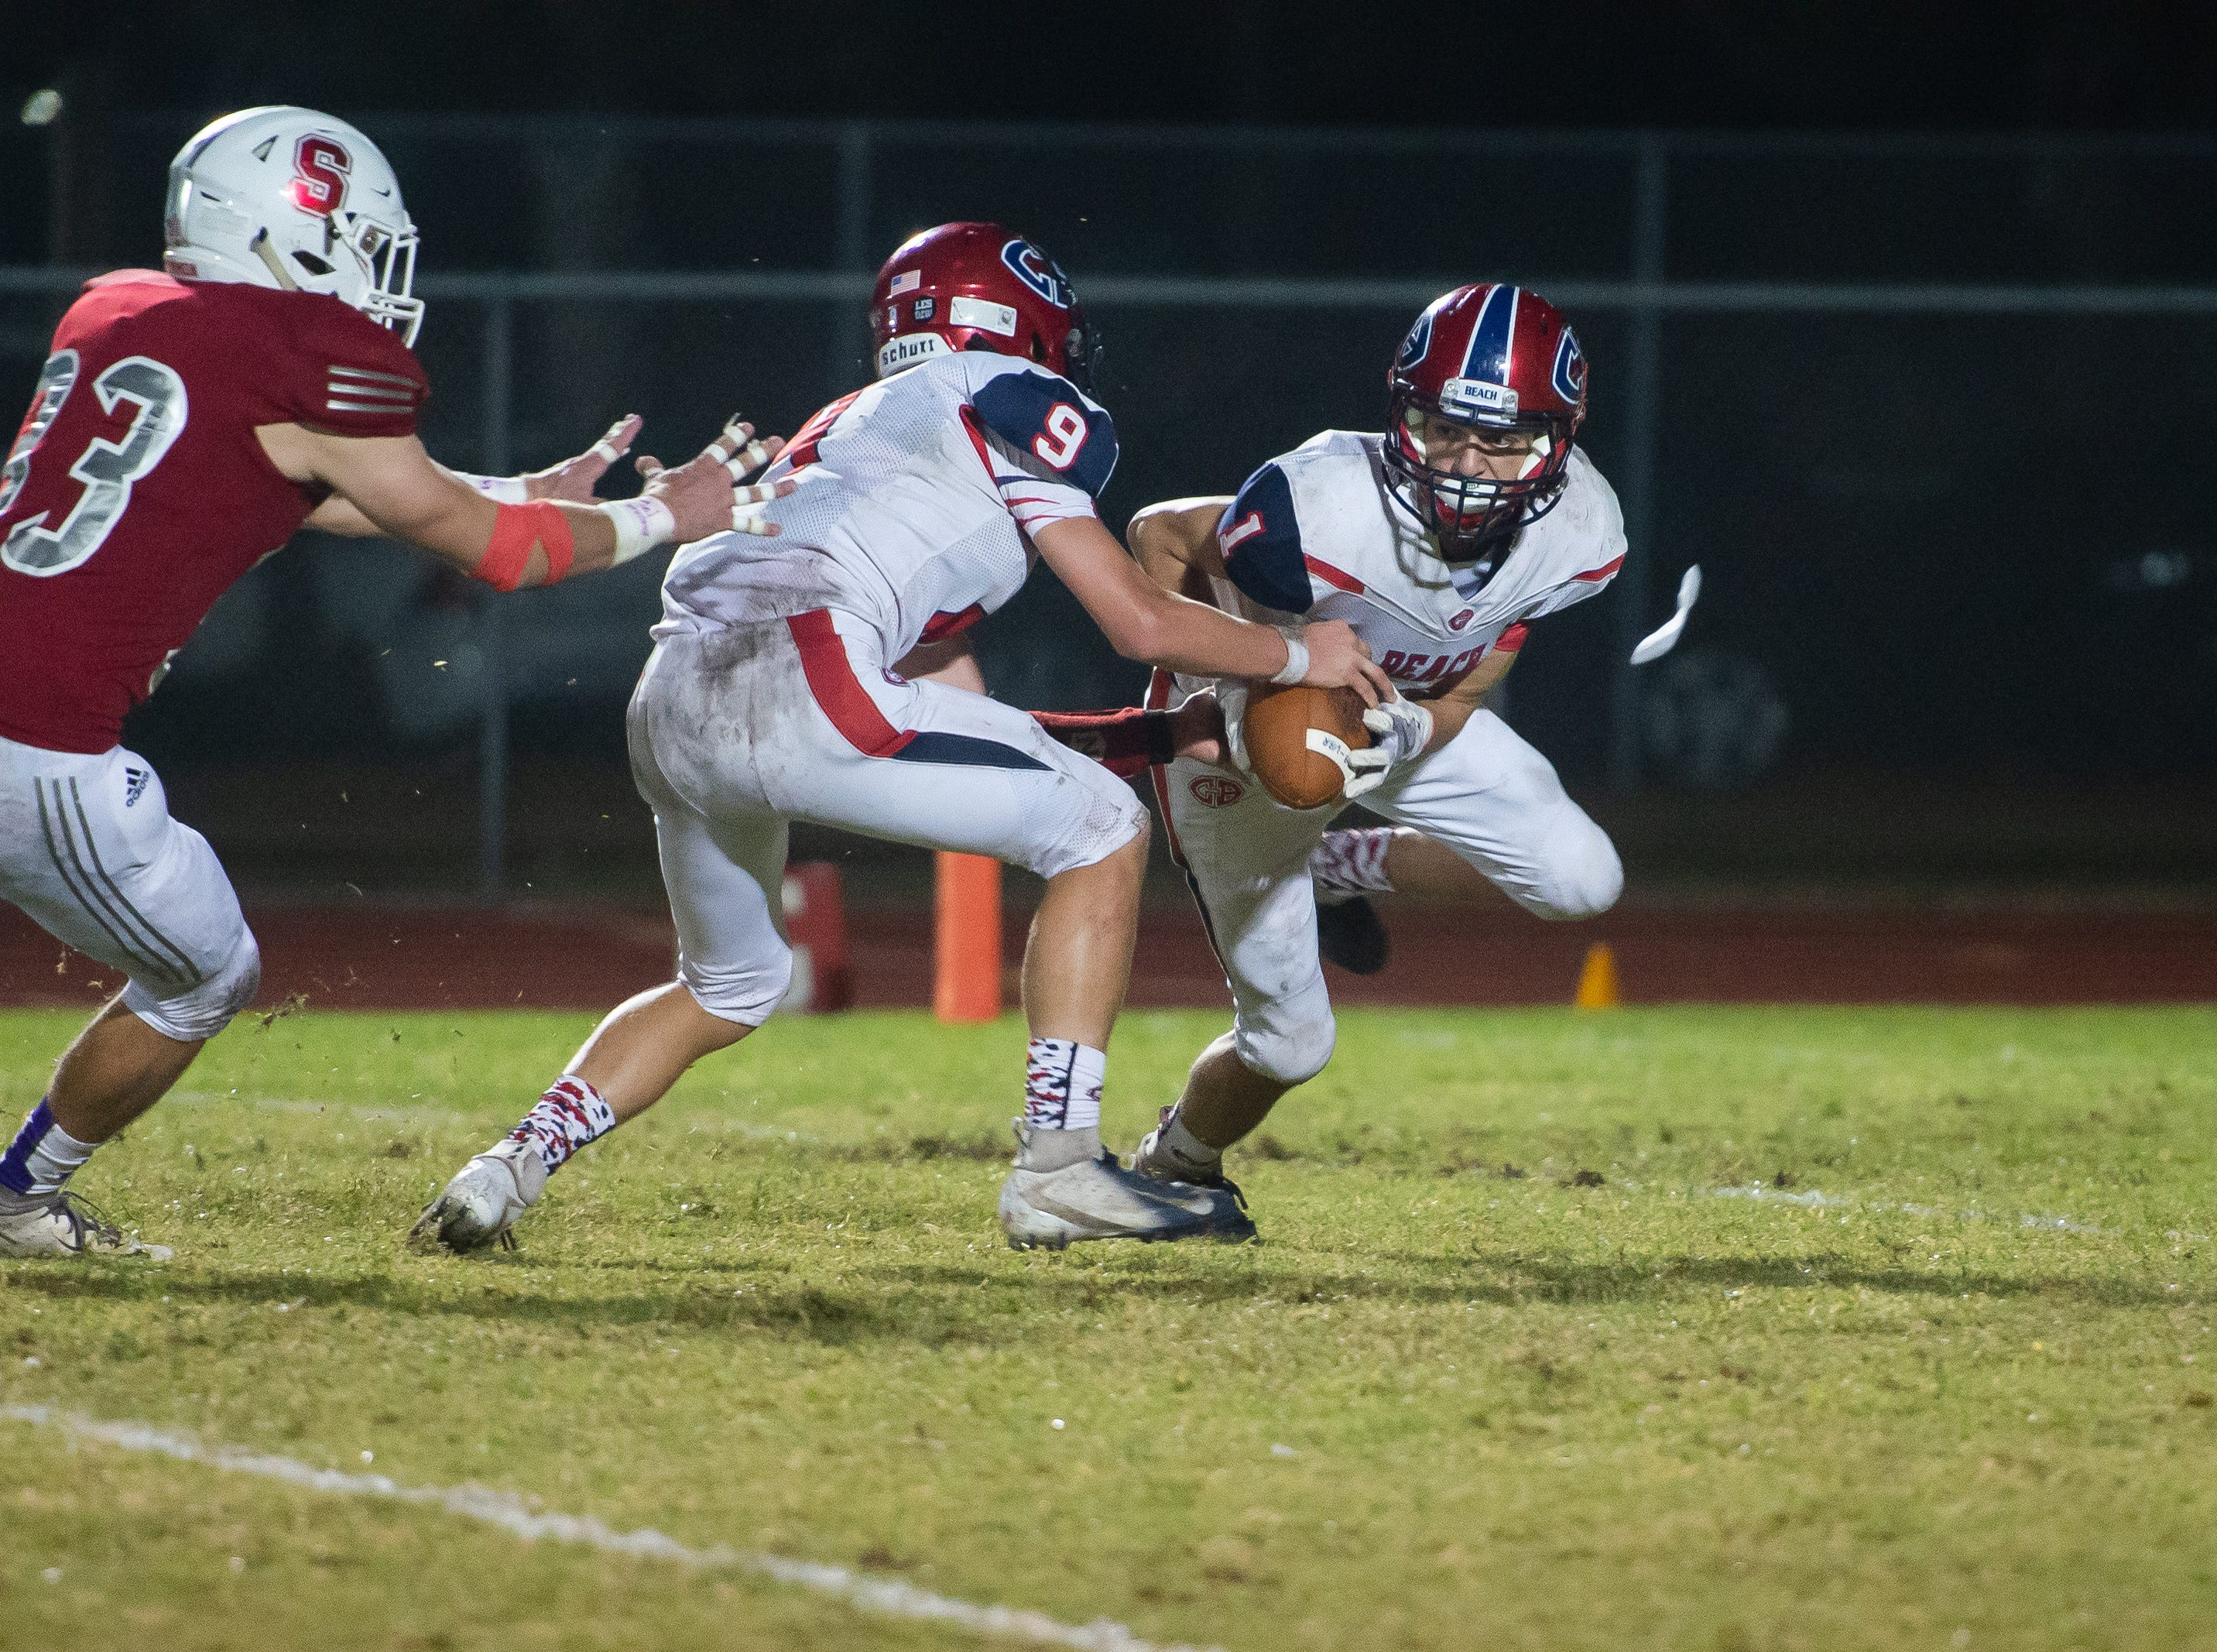 Cocoa Beach's Thomas Nargi hands the ball to Ryan Tsarnas during the first half against Satellite High.